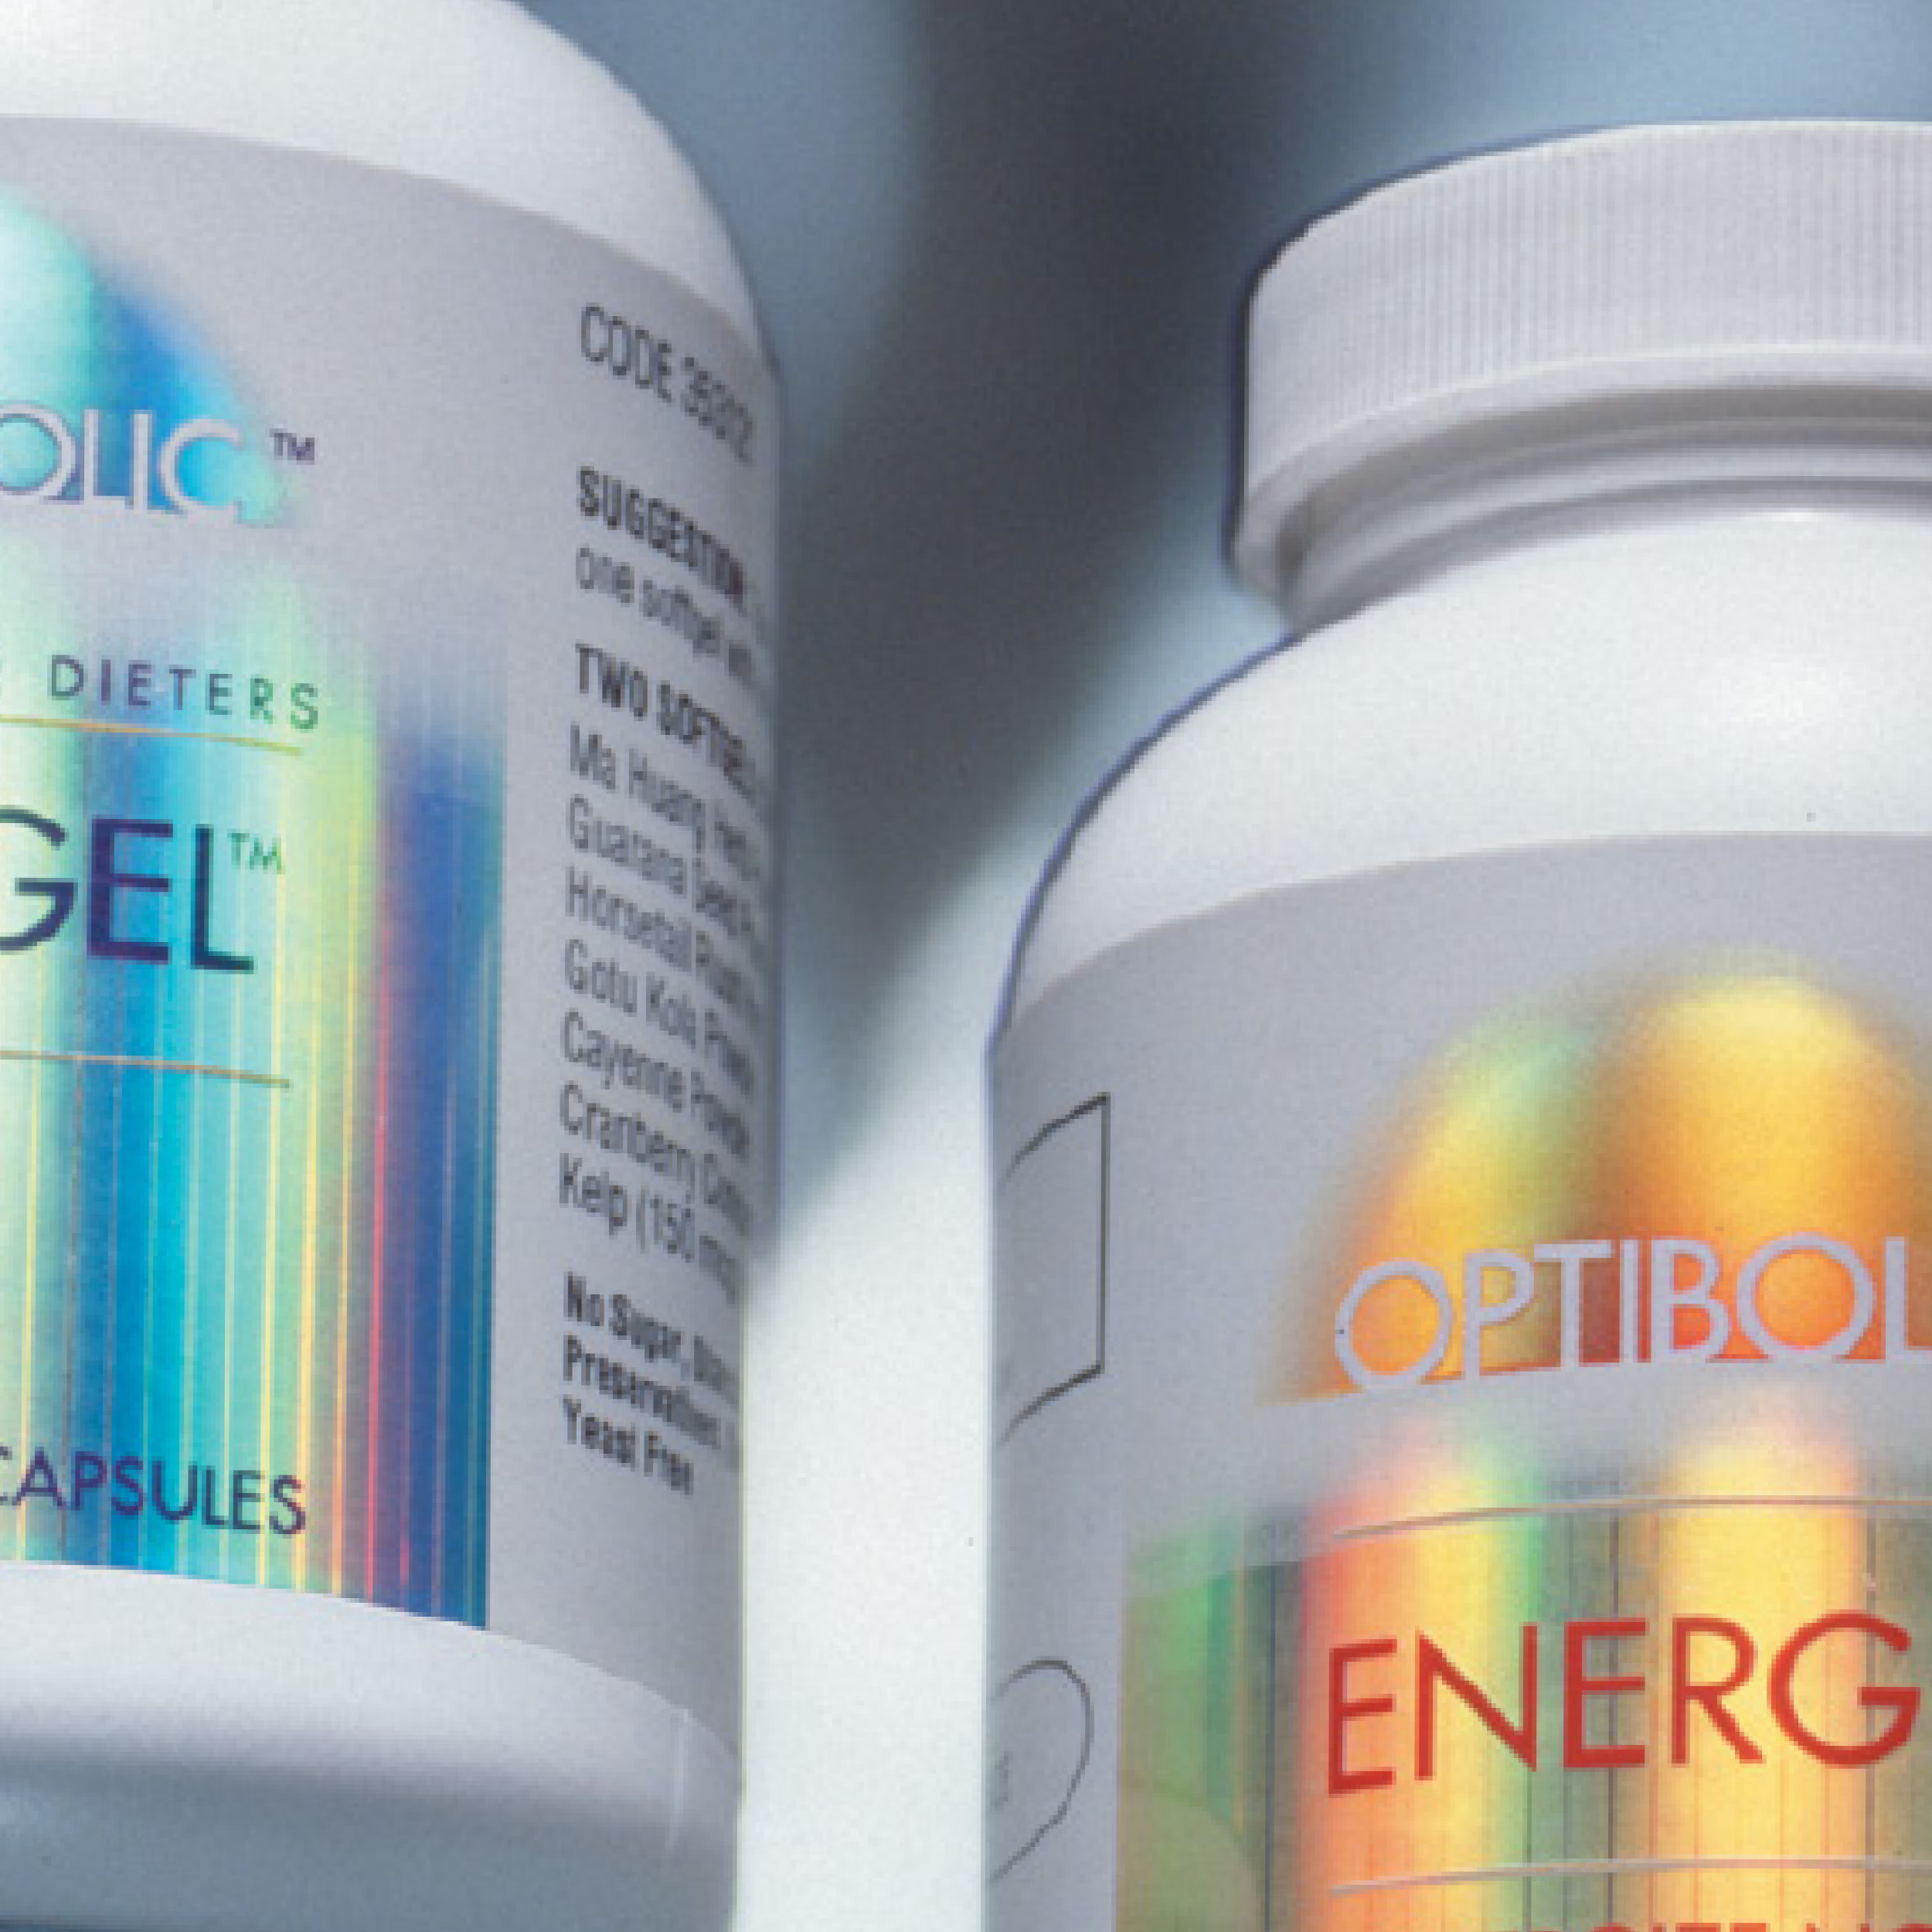 GNC | OPTIBOLIC   PRODUCT REBRAND DELIVERS $100M+ IN SALES